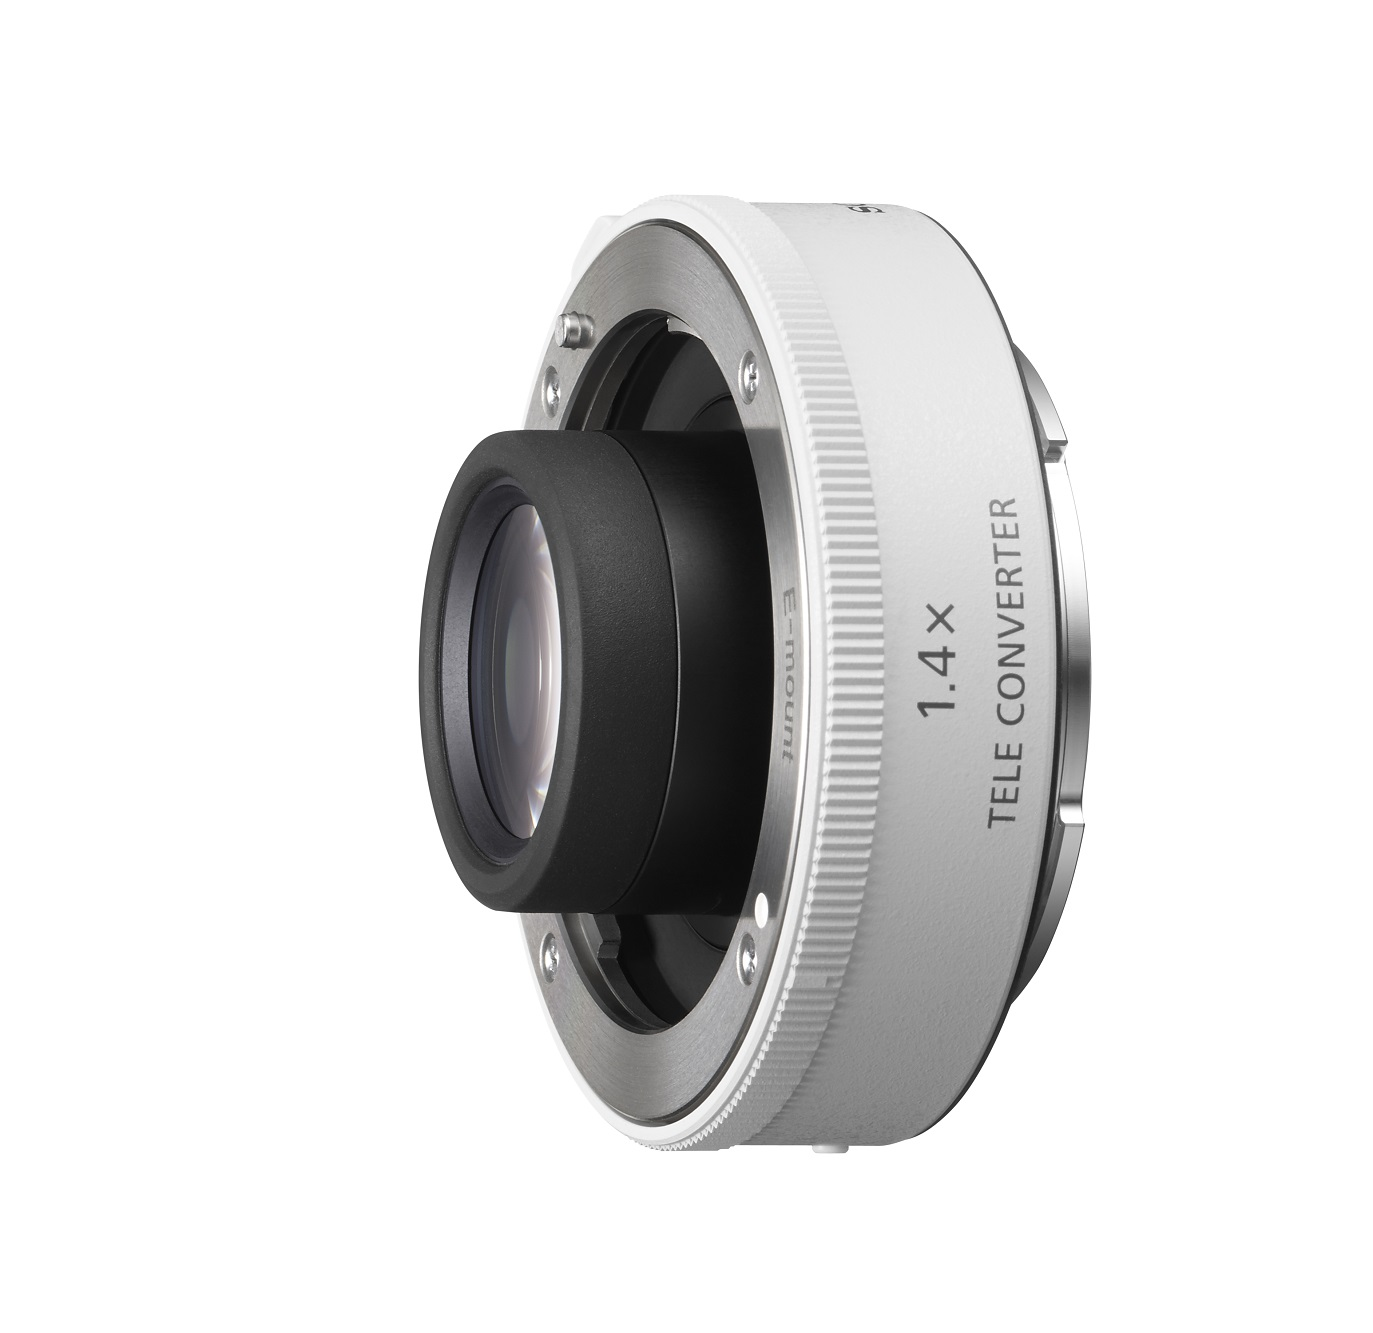 sony g master lens review